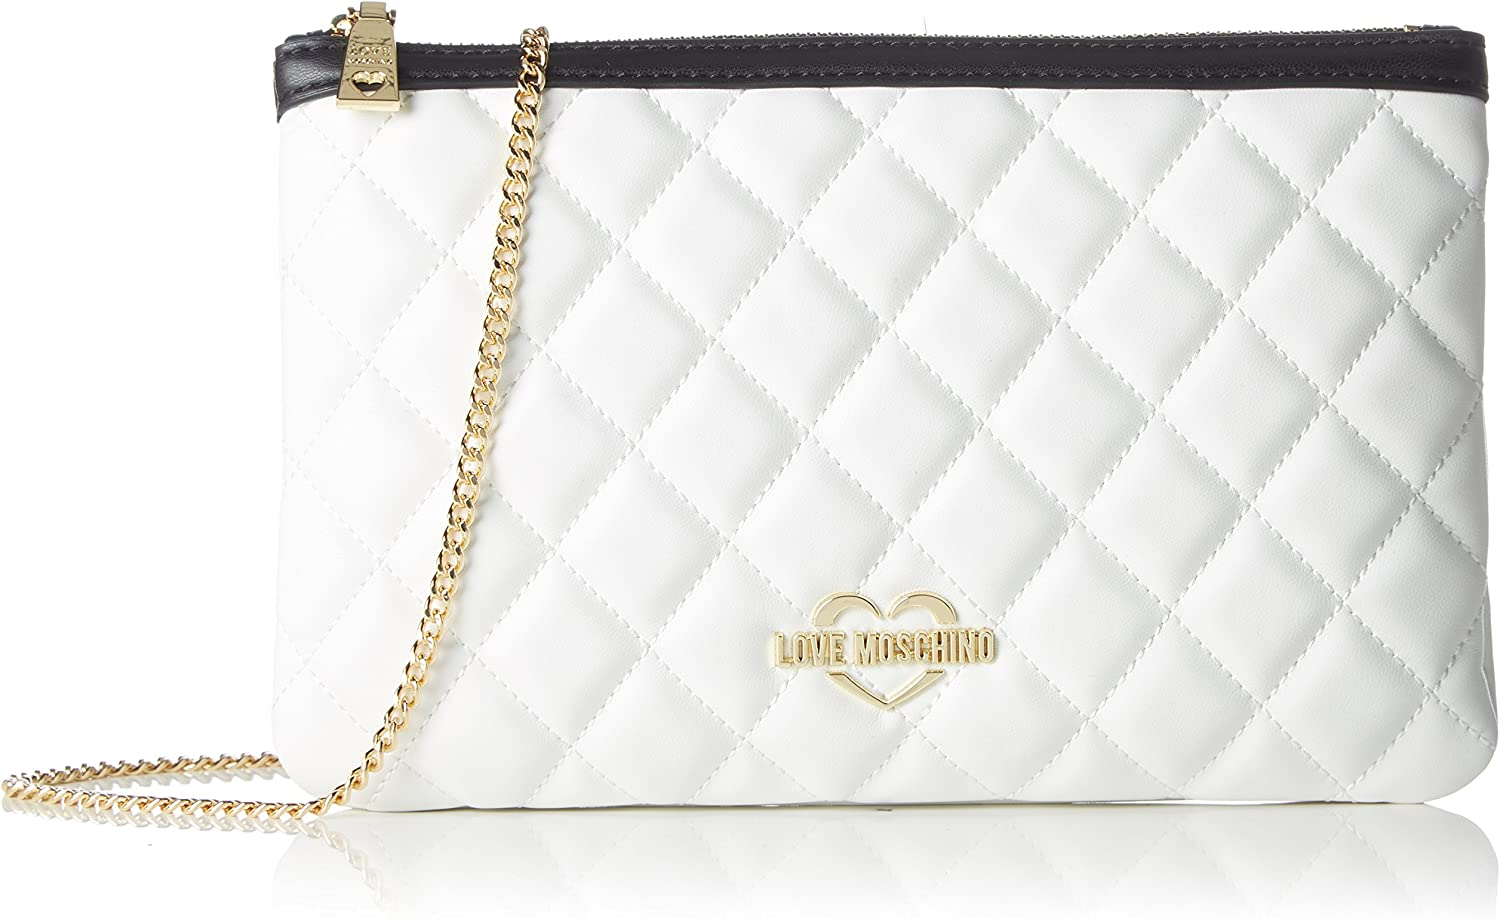 Love Moschino Max 71% OFF 67% OFF of fixed price Shoulder Bag